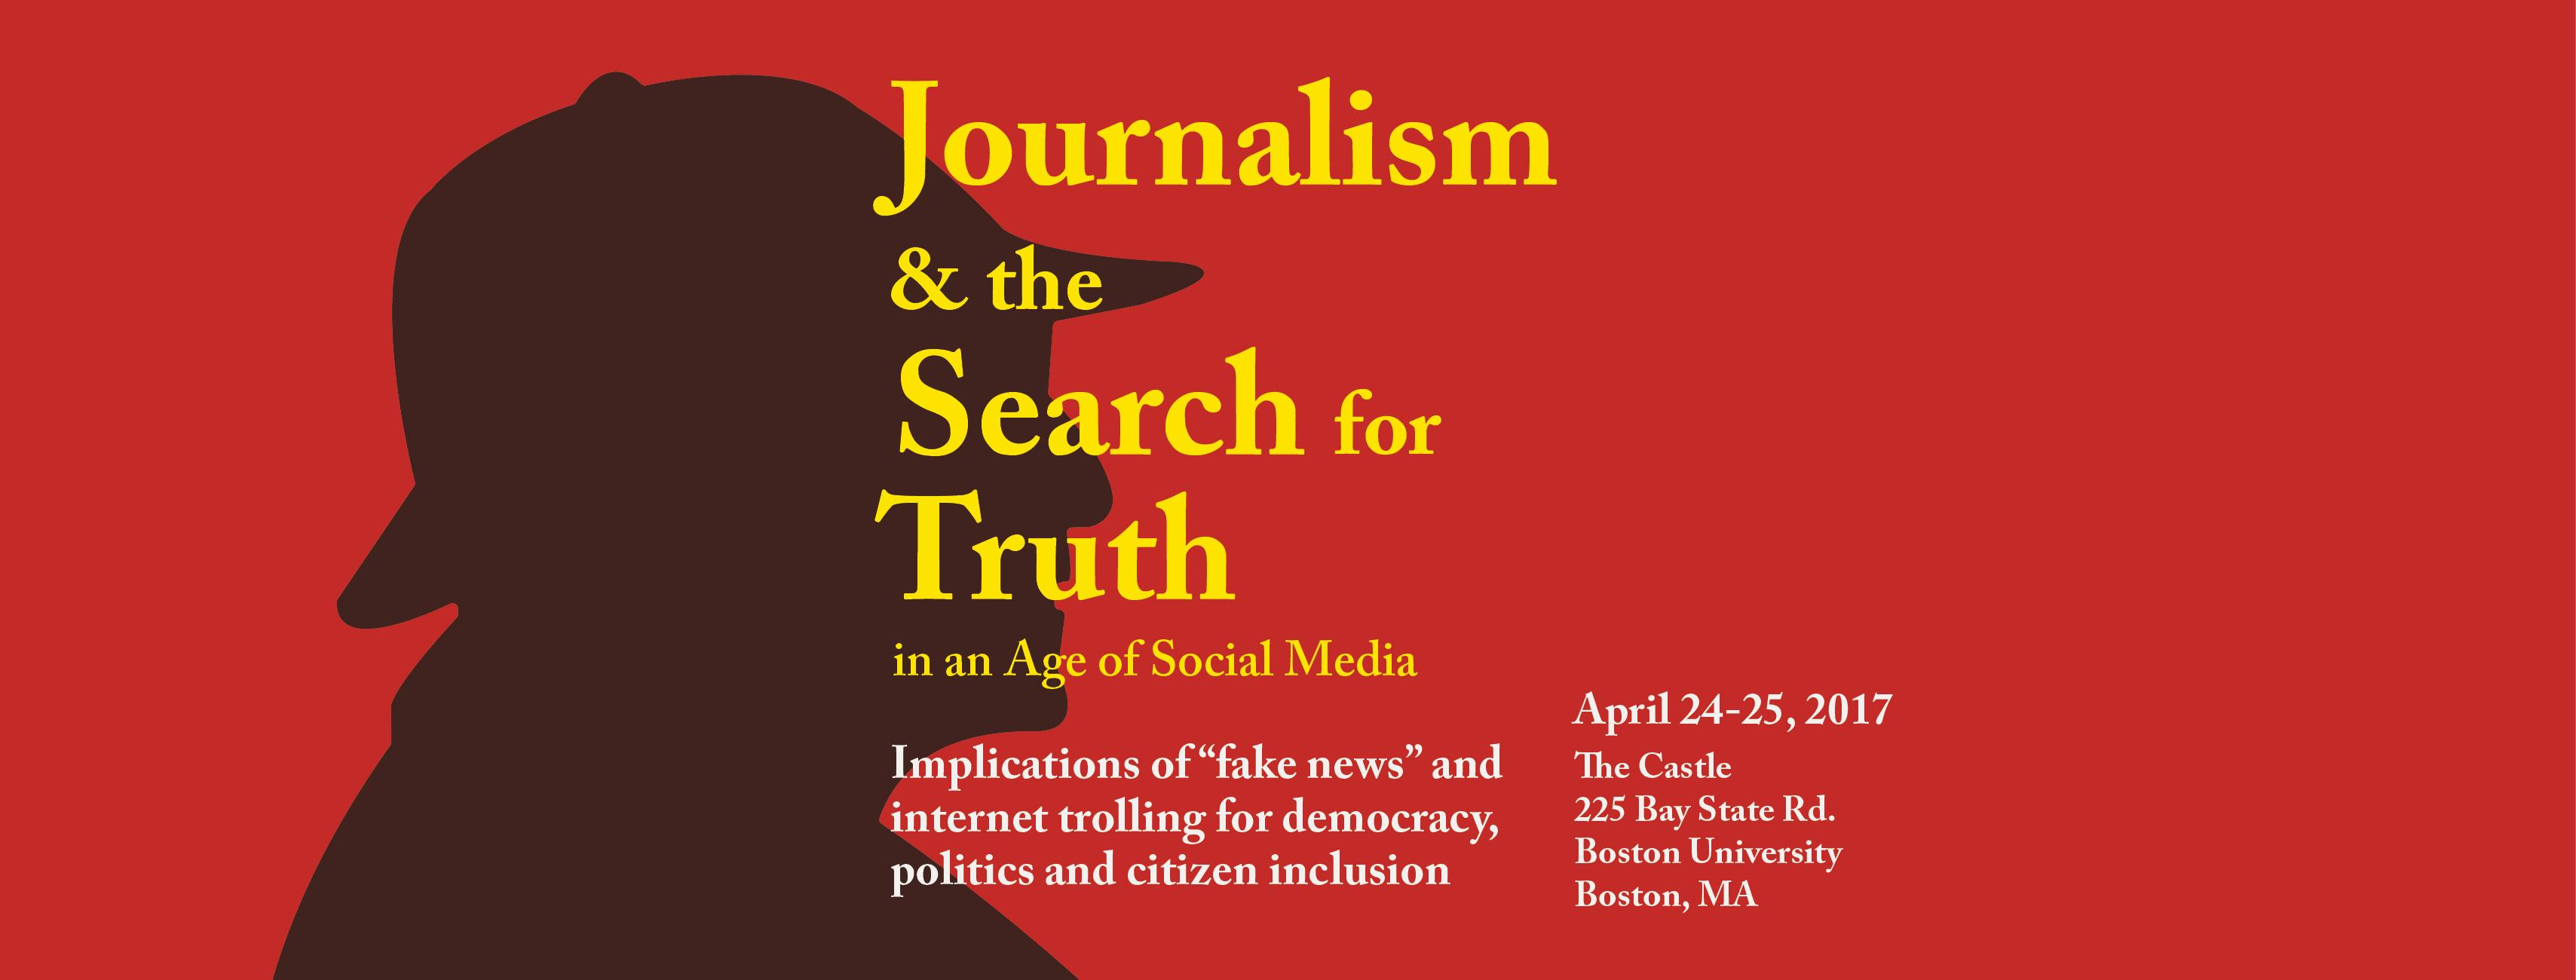 Journalism and the Search for Truth in an Age